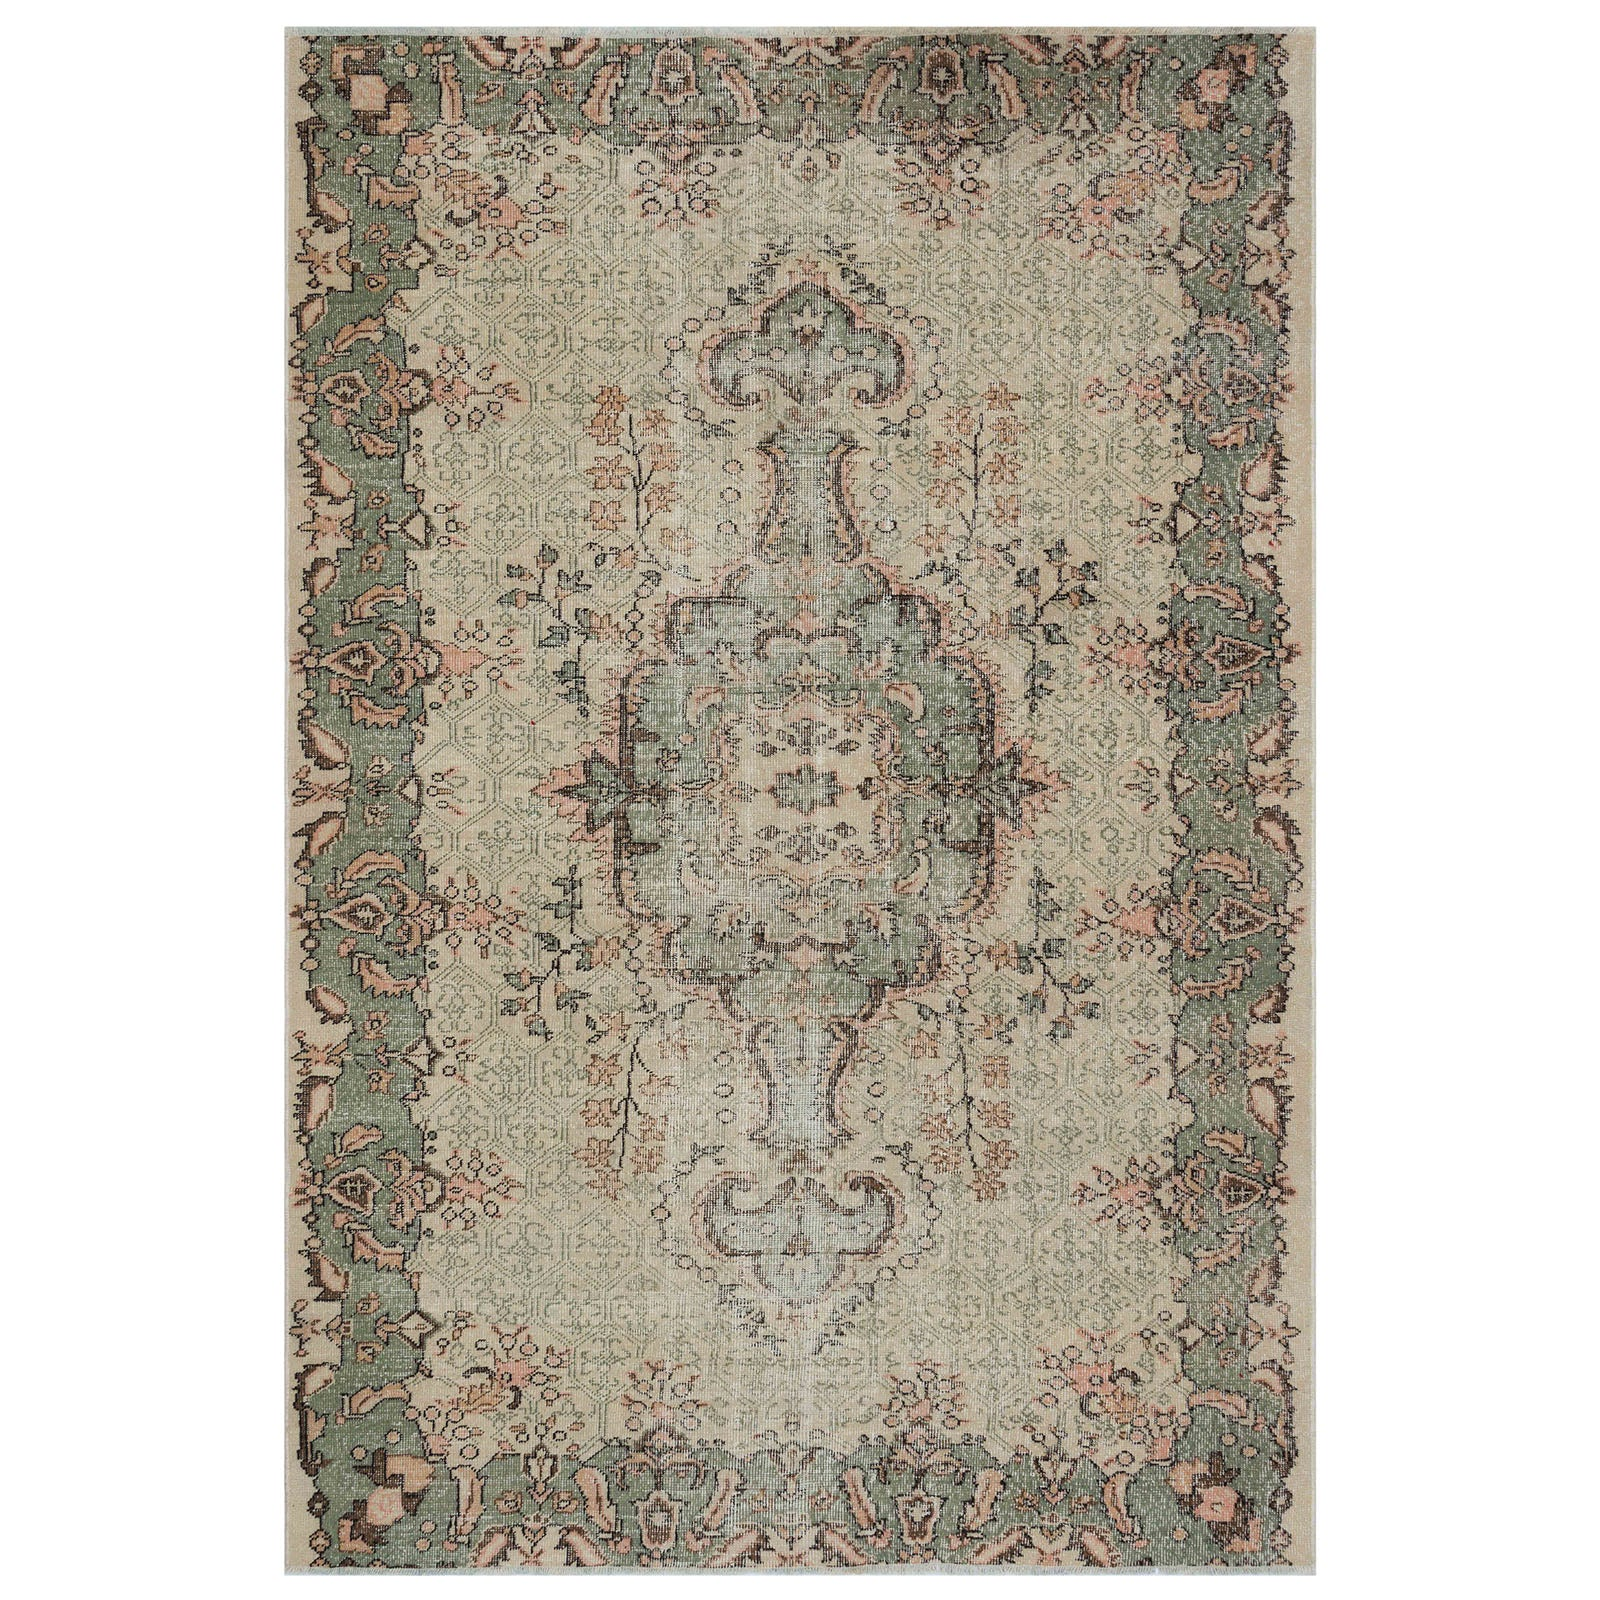 Hali 190X280 CM Bursa Handmade over dyed rug 1783